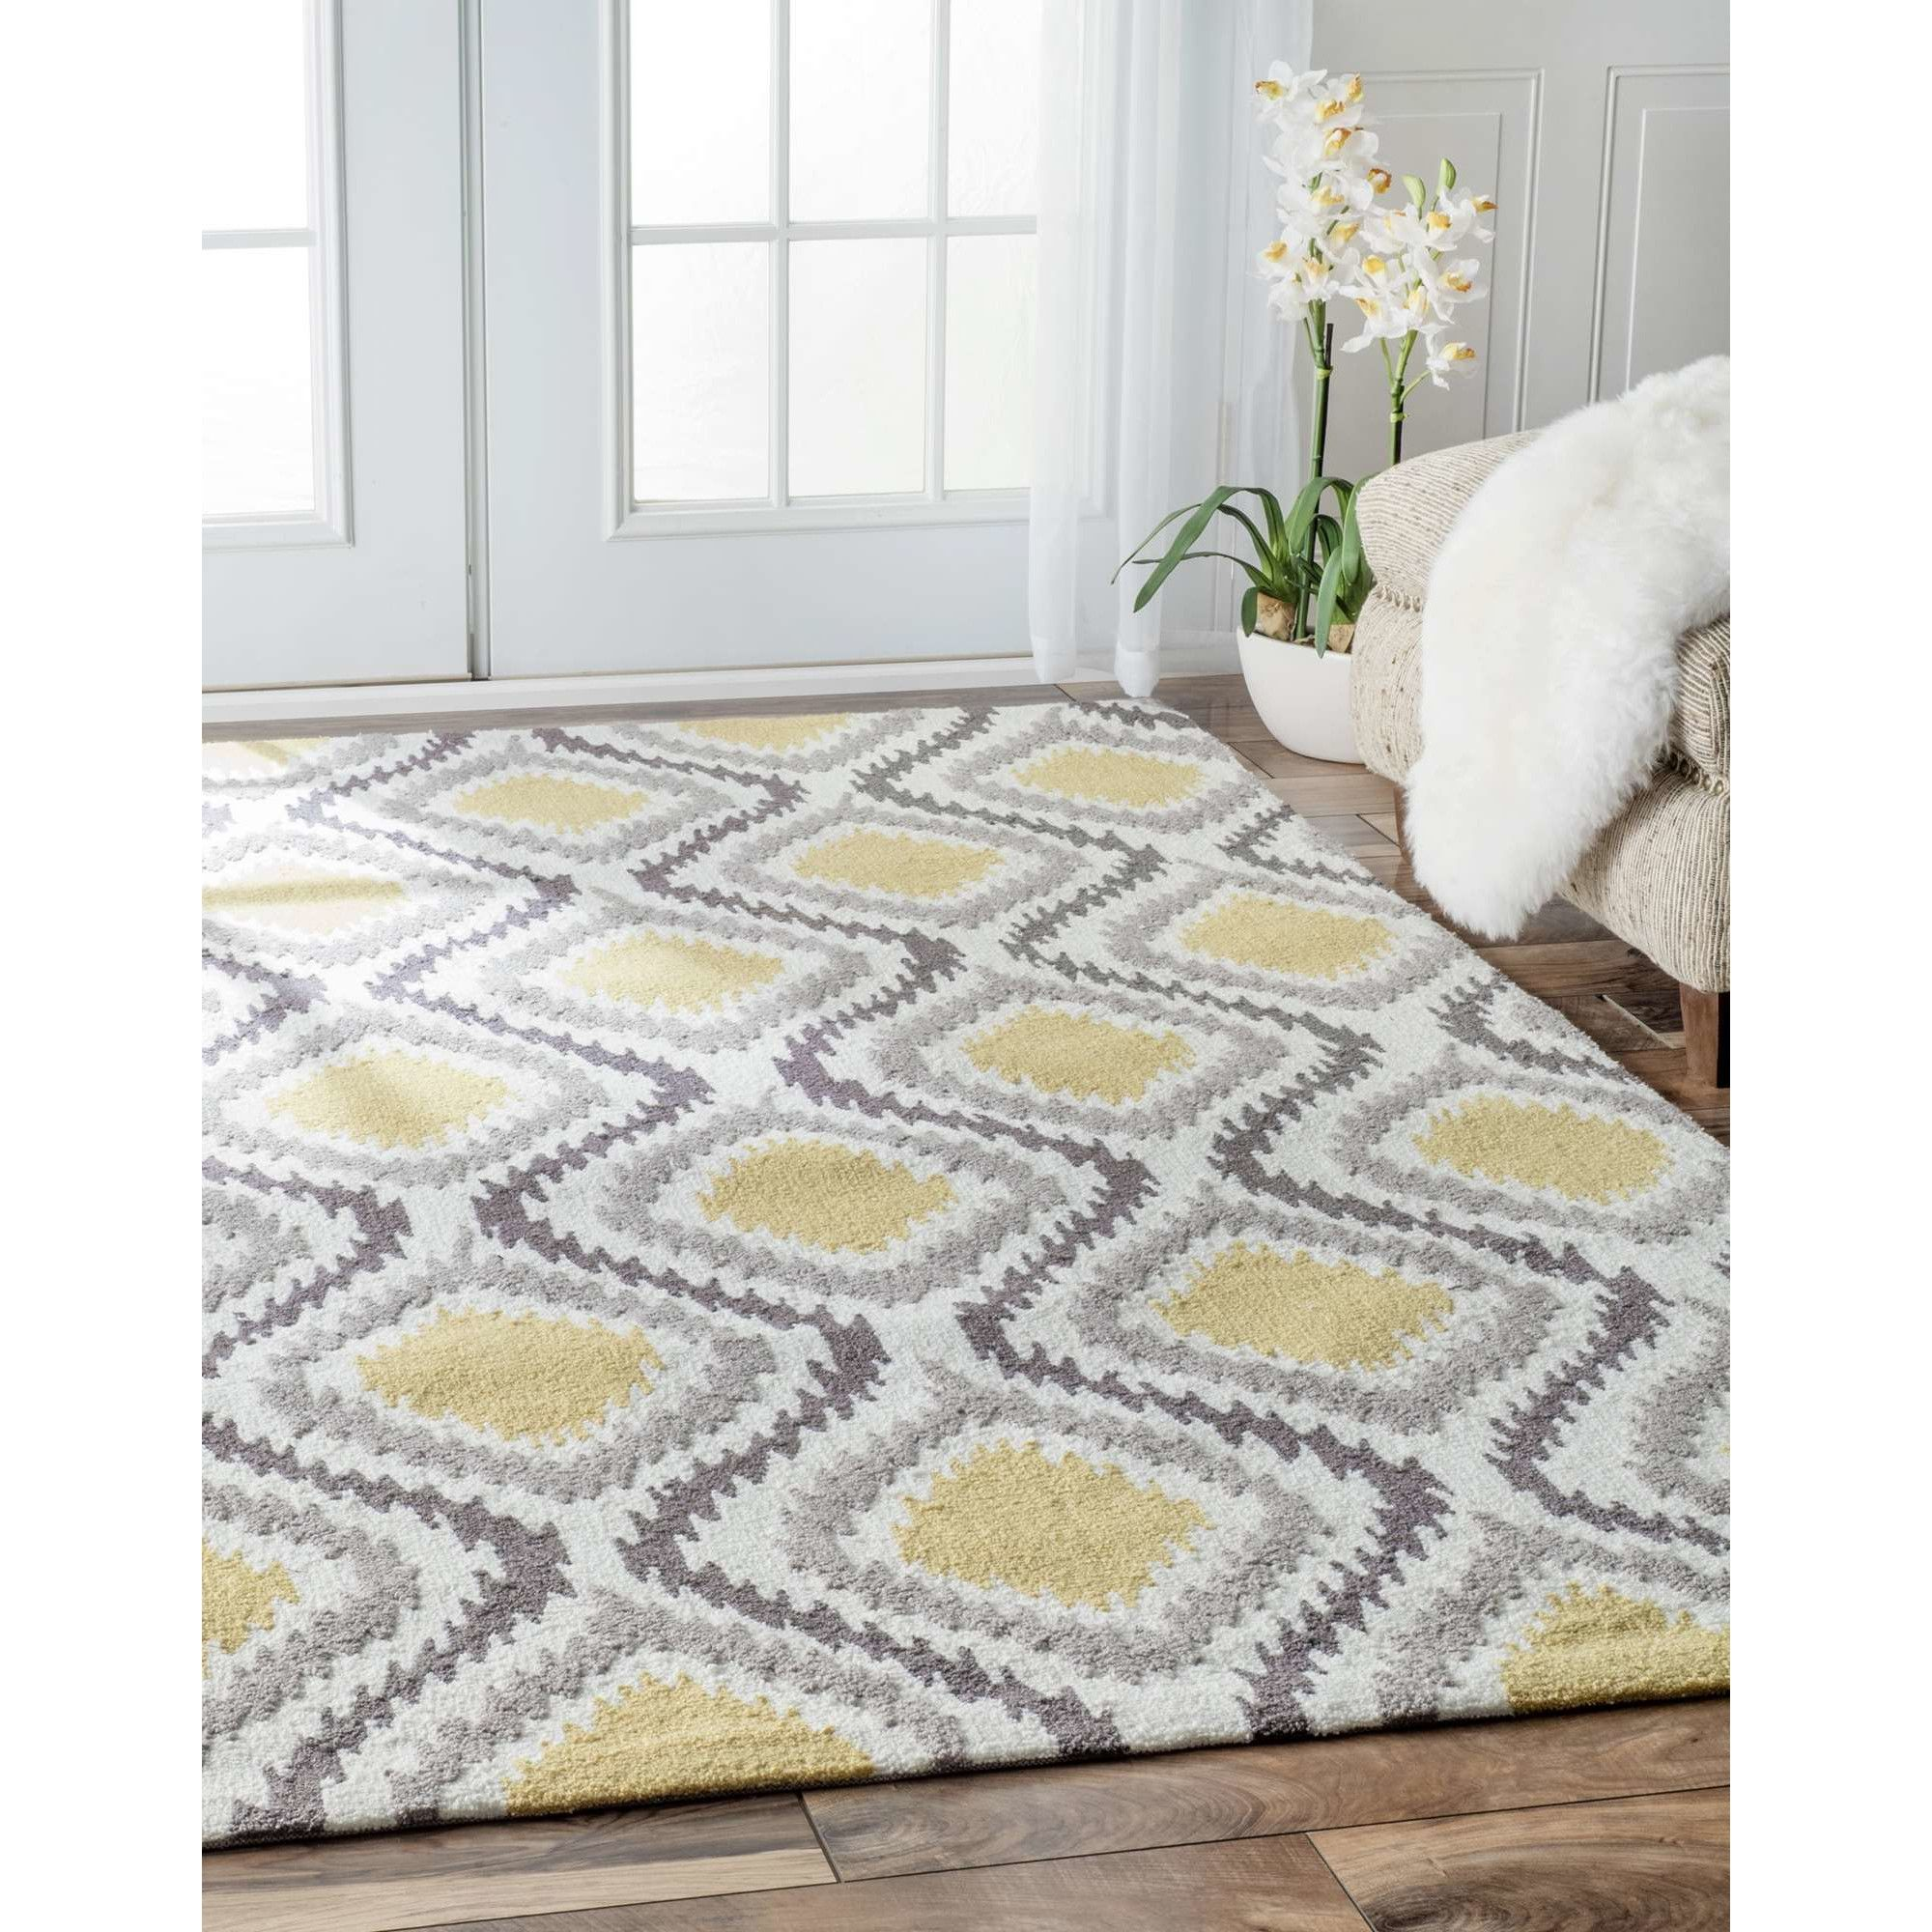 Find The Perfect All Rugs For You Online At Wayfair Co Uk From Zillions Of